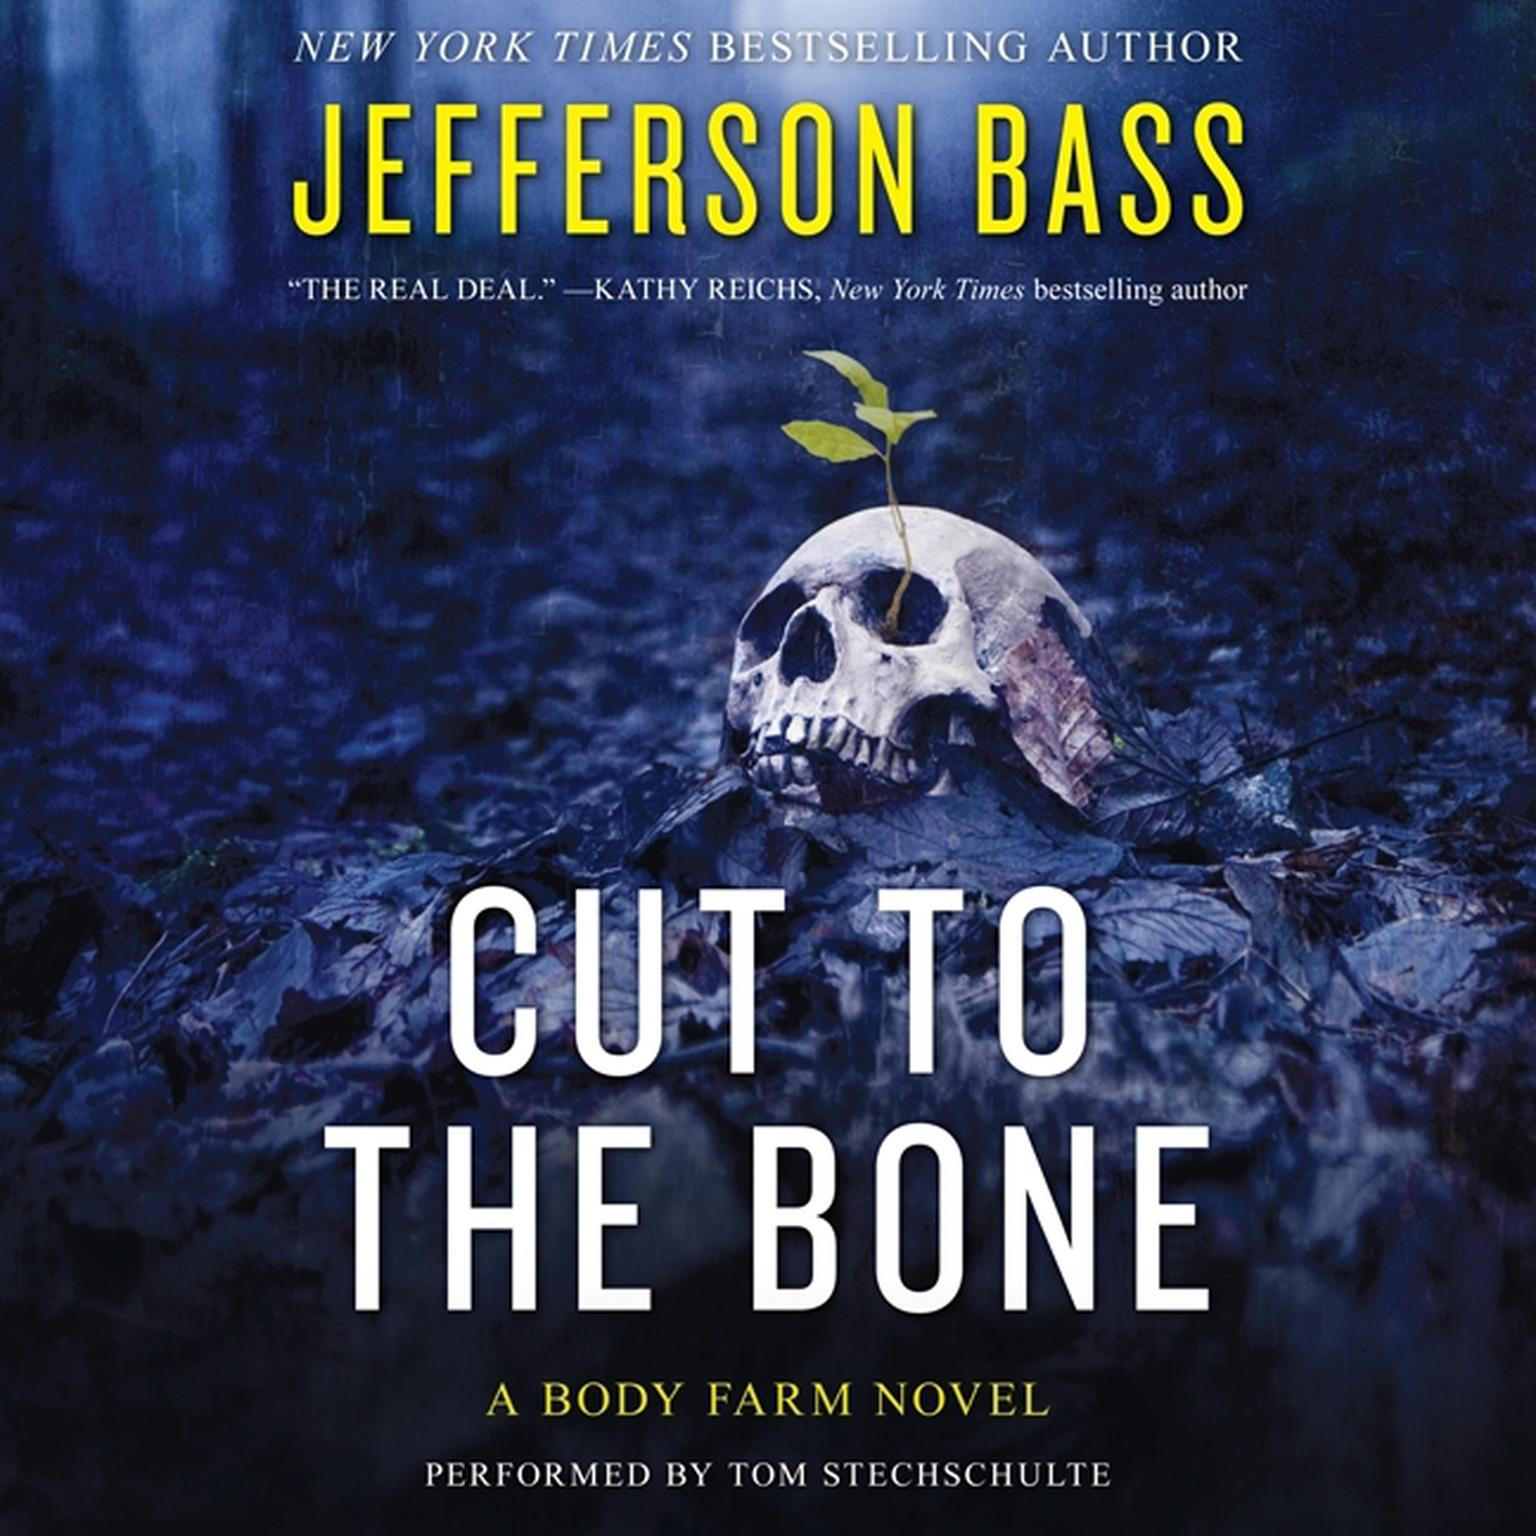 Printable Cut to the Bone Audiobook Cover Art